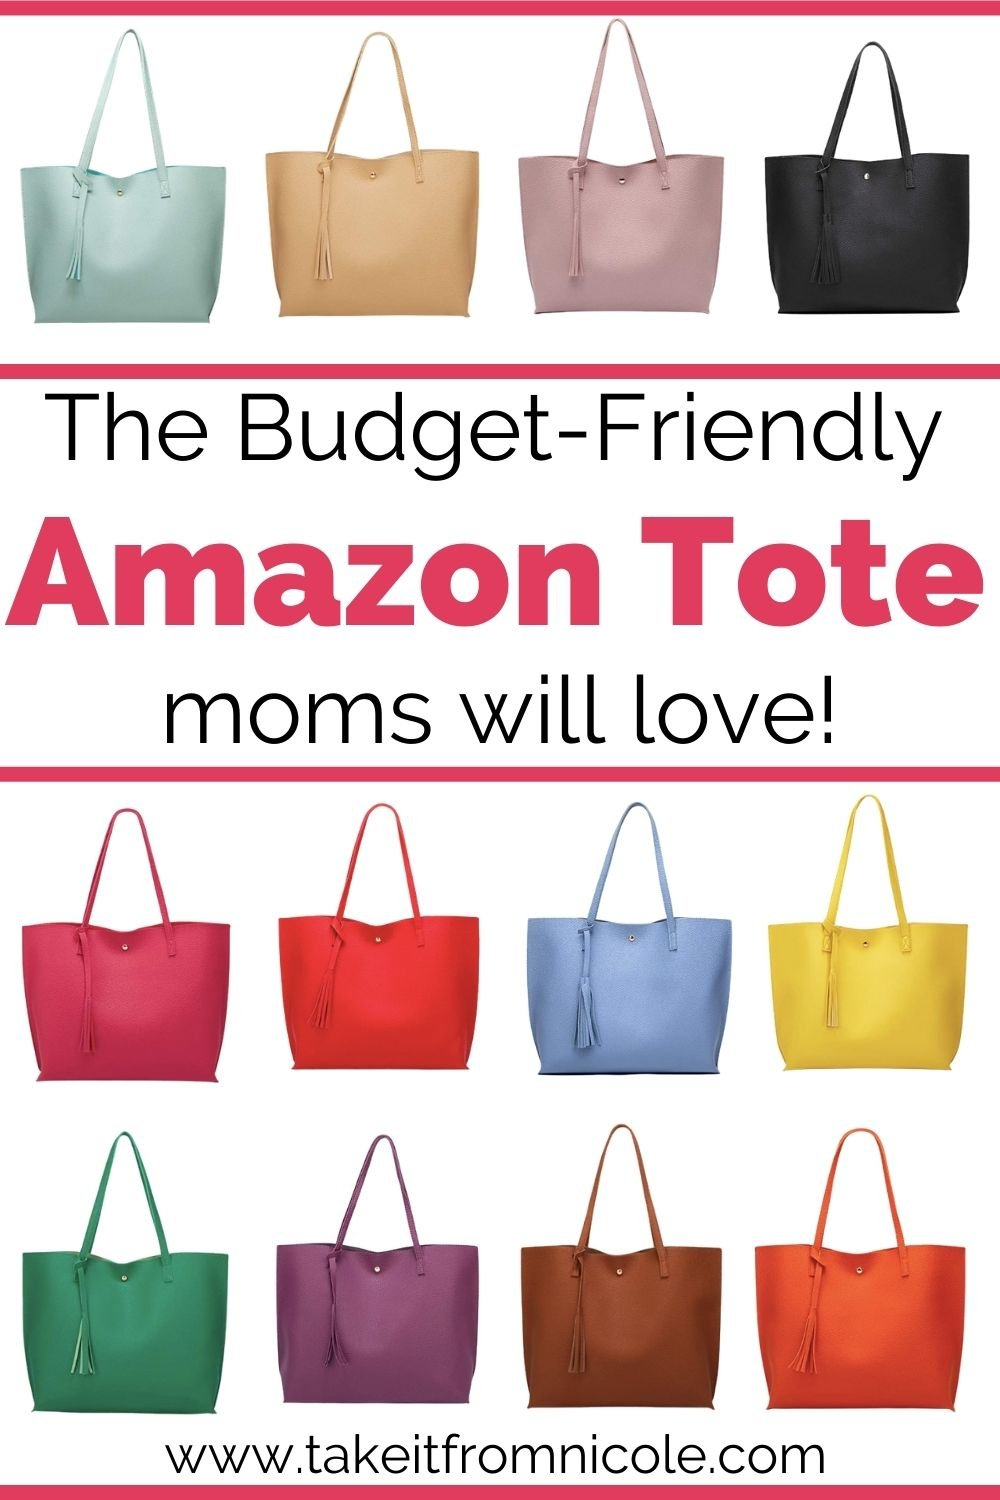 This affordable mom tote bag is a must have! It comes in a wide variety of colors at a budget friendly price point.